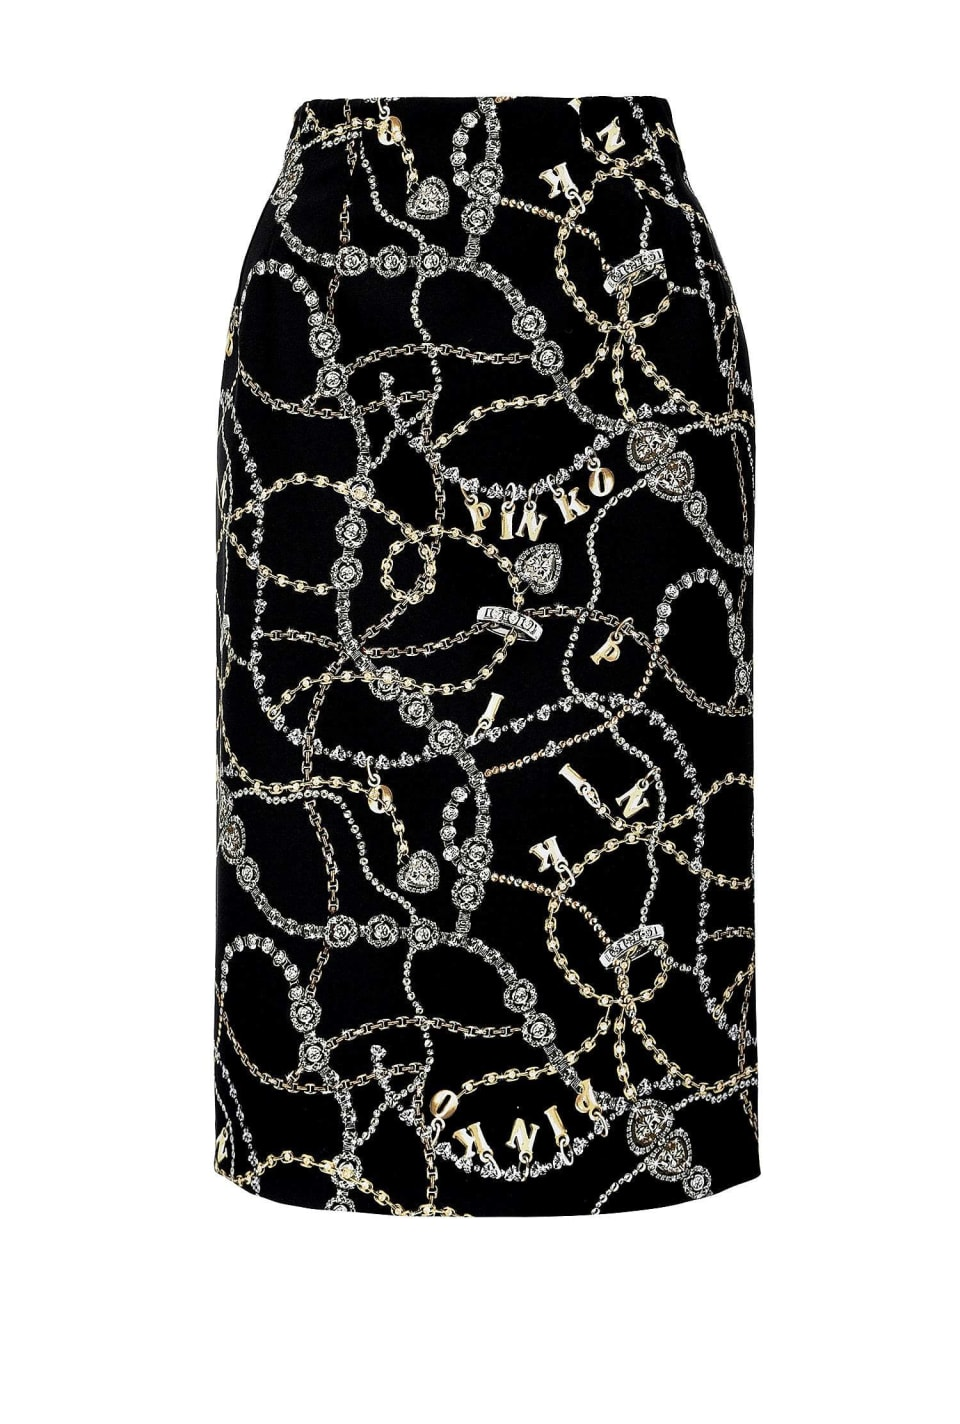 Jewel print skirt